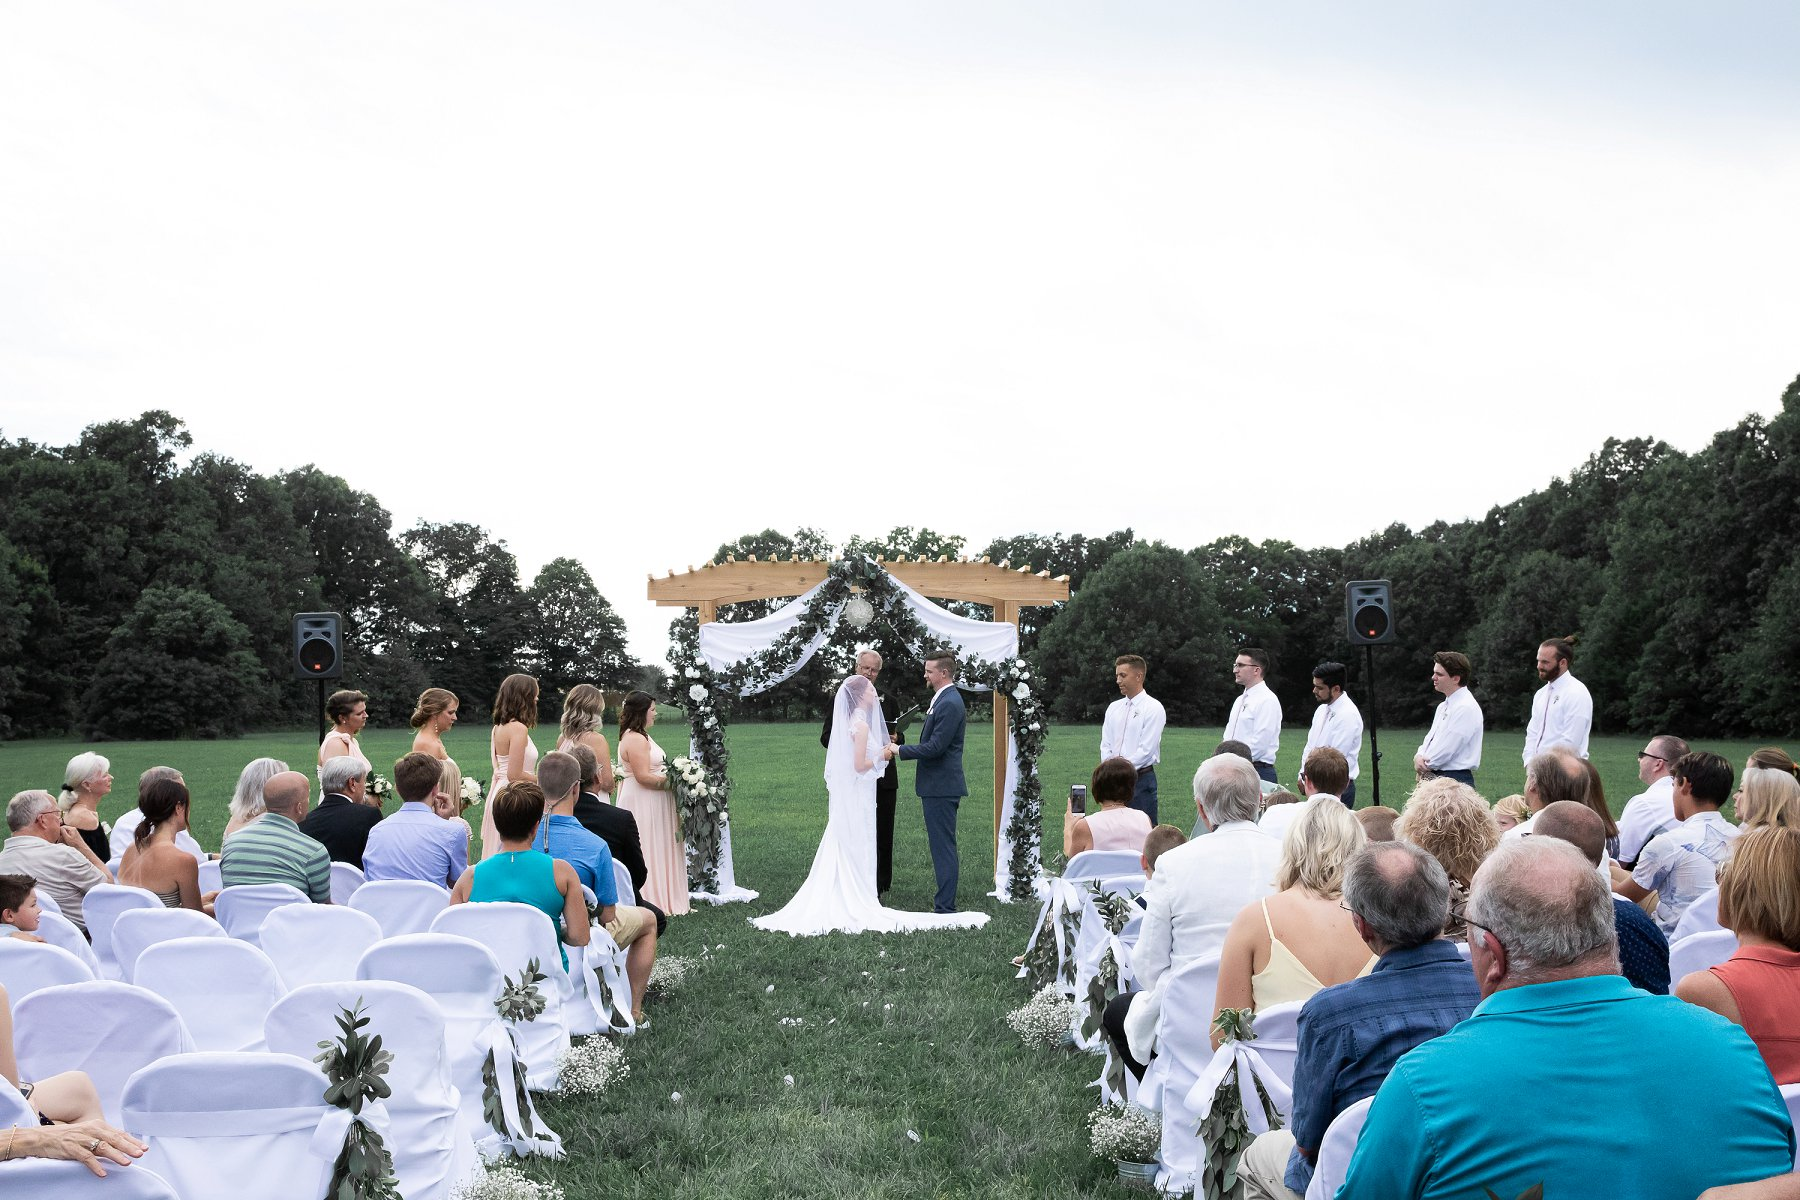 Outdoor Summer Wedding Photography in Kansas City by Merry Ohler, wedding photographer kansas city - 30